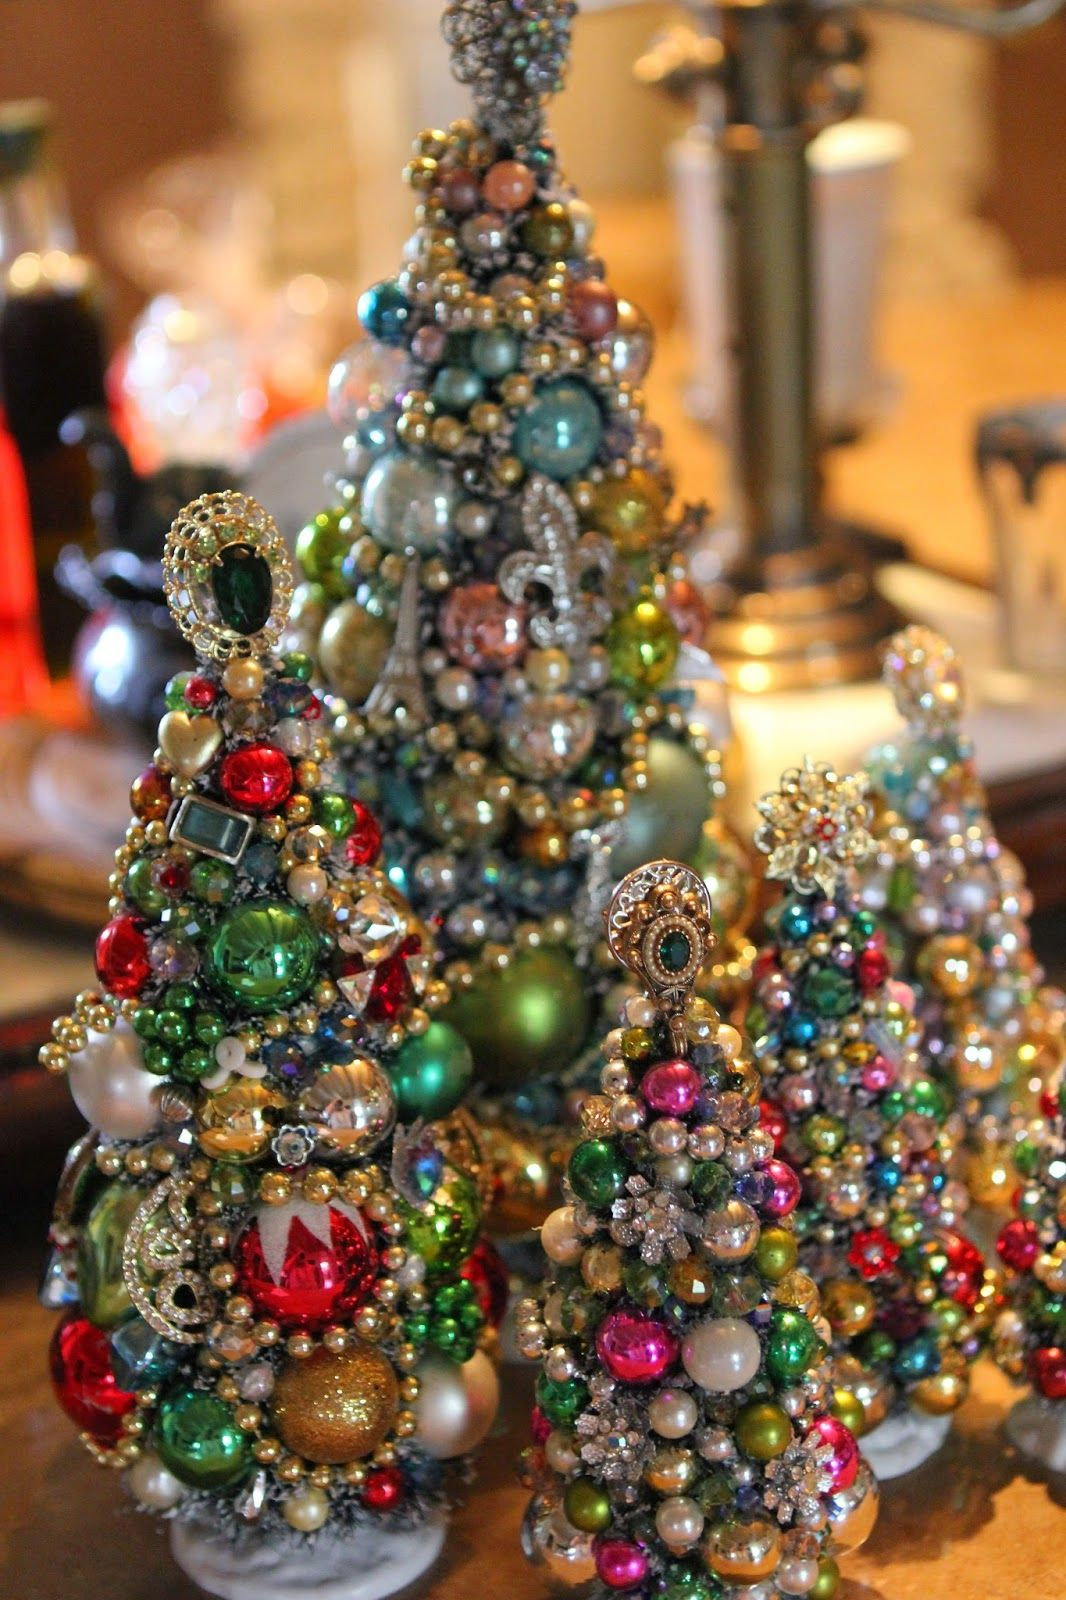 Jewelry and ornament tree | Holidays | Pinterest | Ornament tree ...